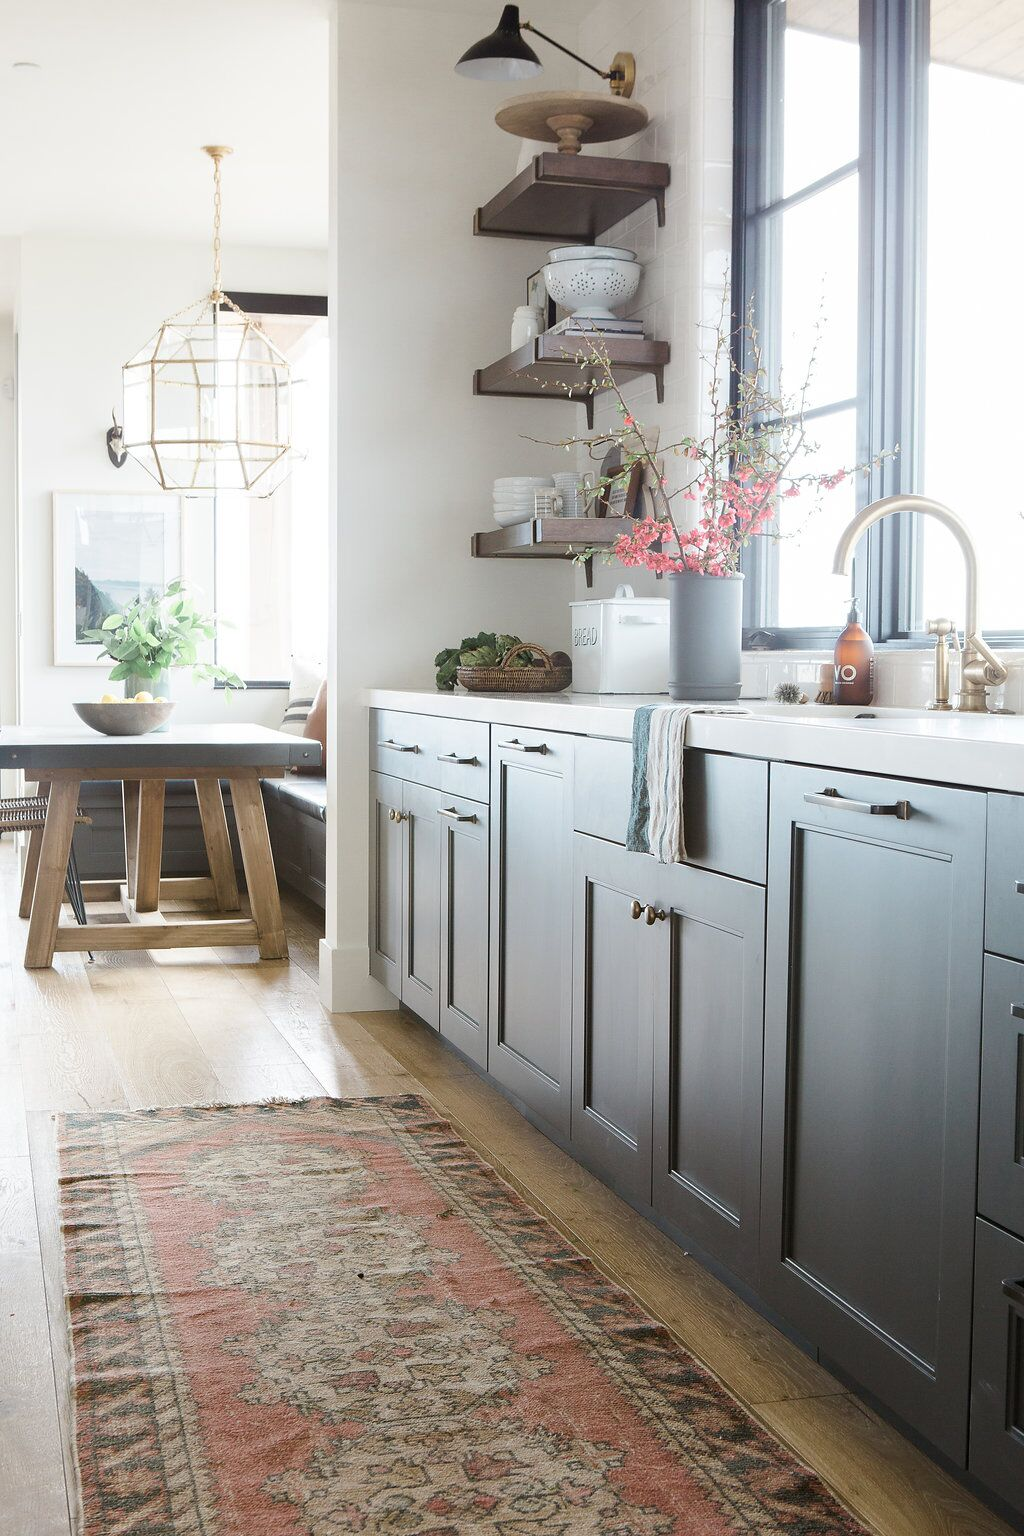 Grey cabinets with white counter top and faucet